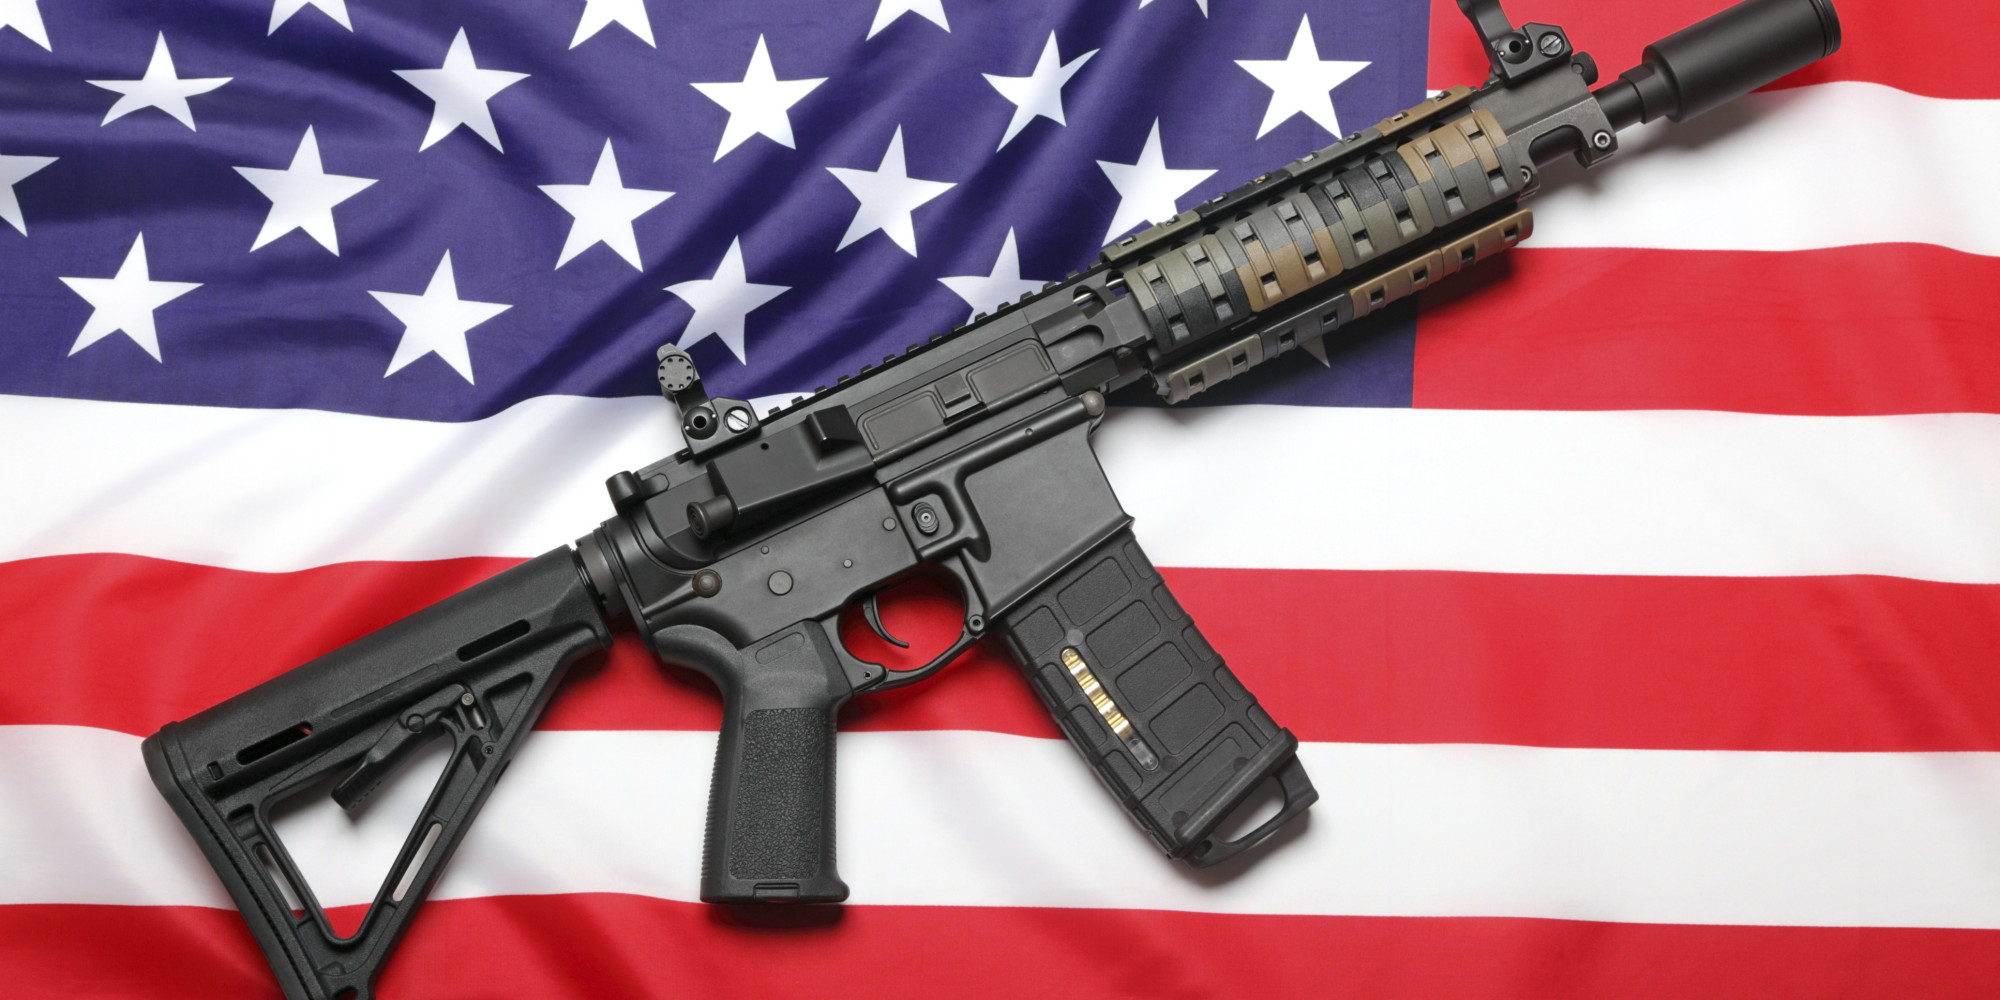 the arms used by the police in canada Brownells is your home for firearm accessories, gun parts, gunsmithing tools, reloading and shooting supplies backed by our 100% satisfaction guarantee.